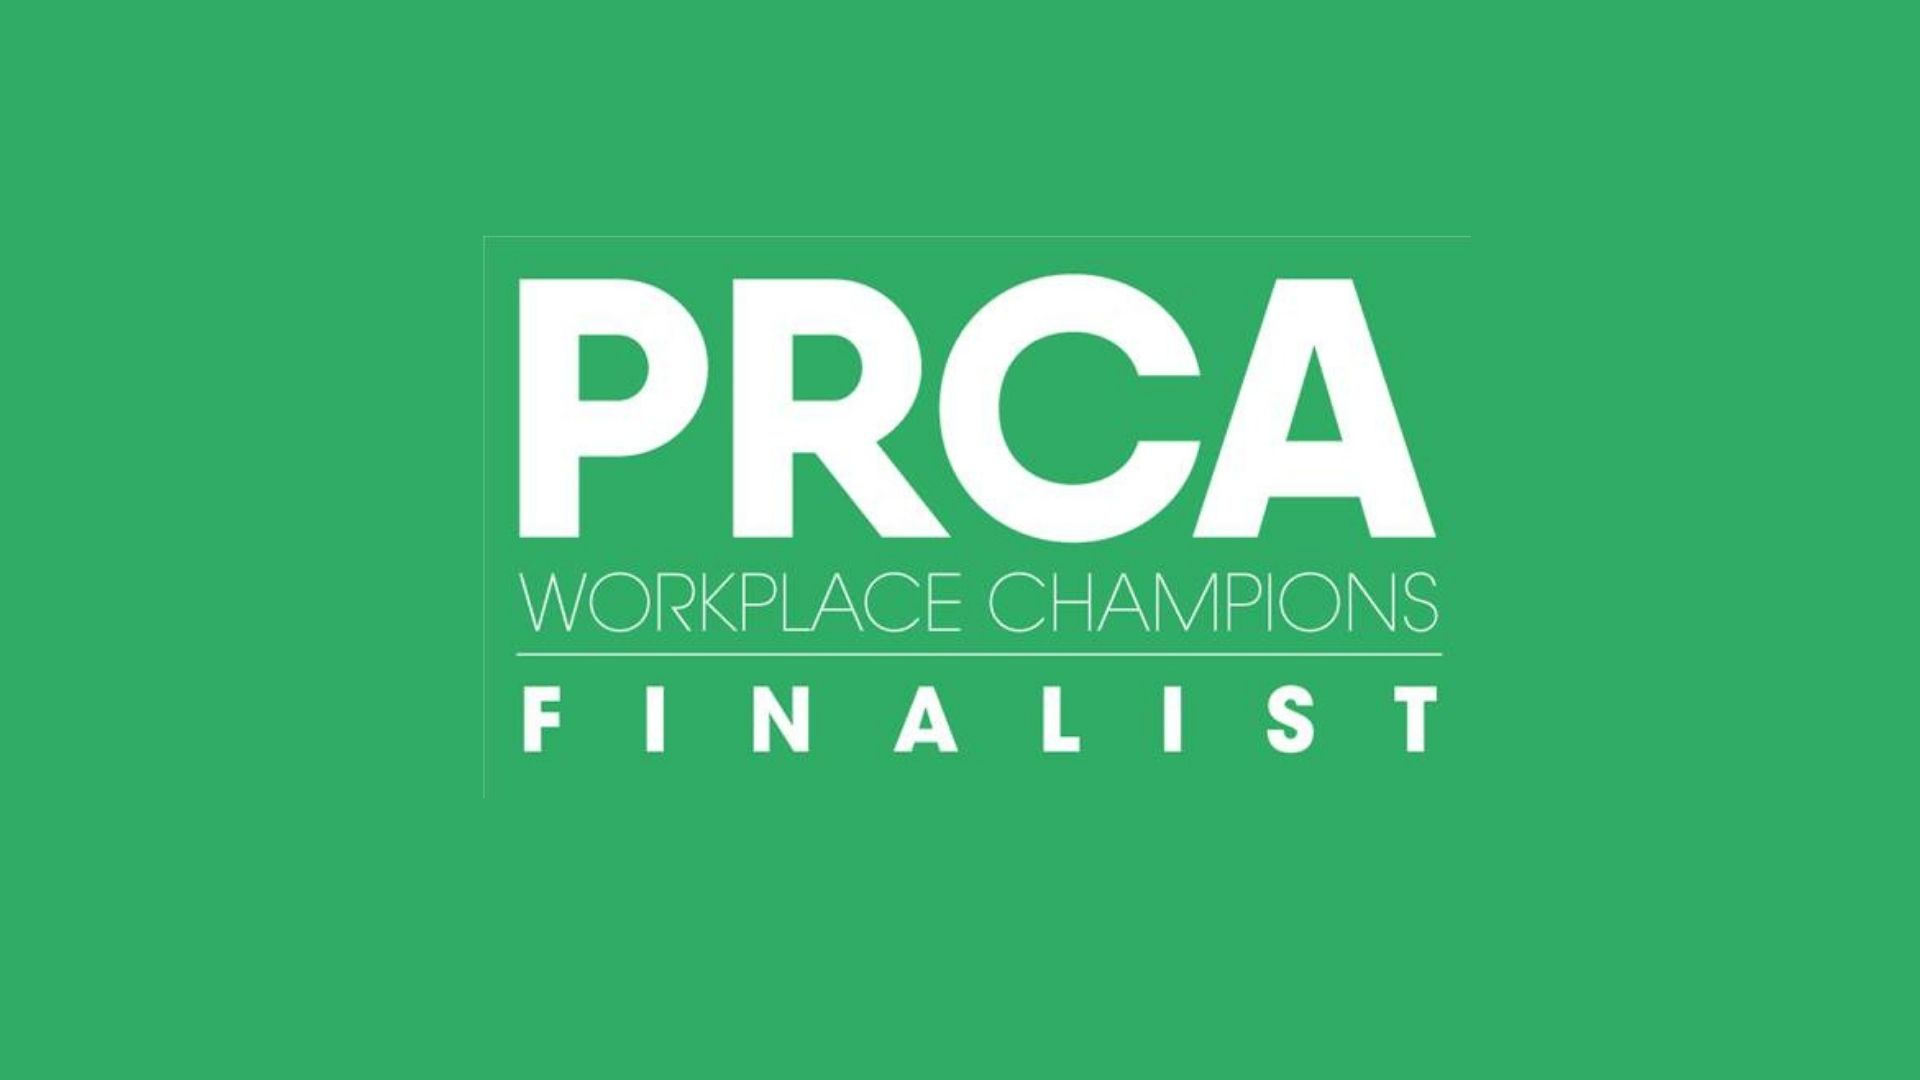 Finalist, Small Agency, PRCA Workplace Champions 2021